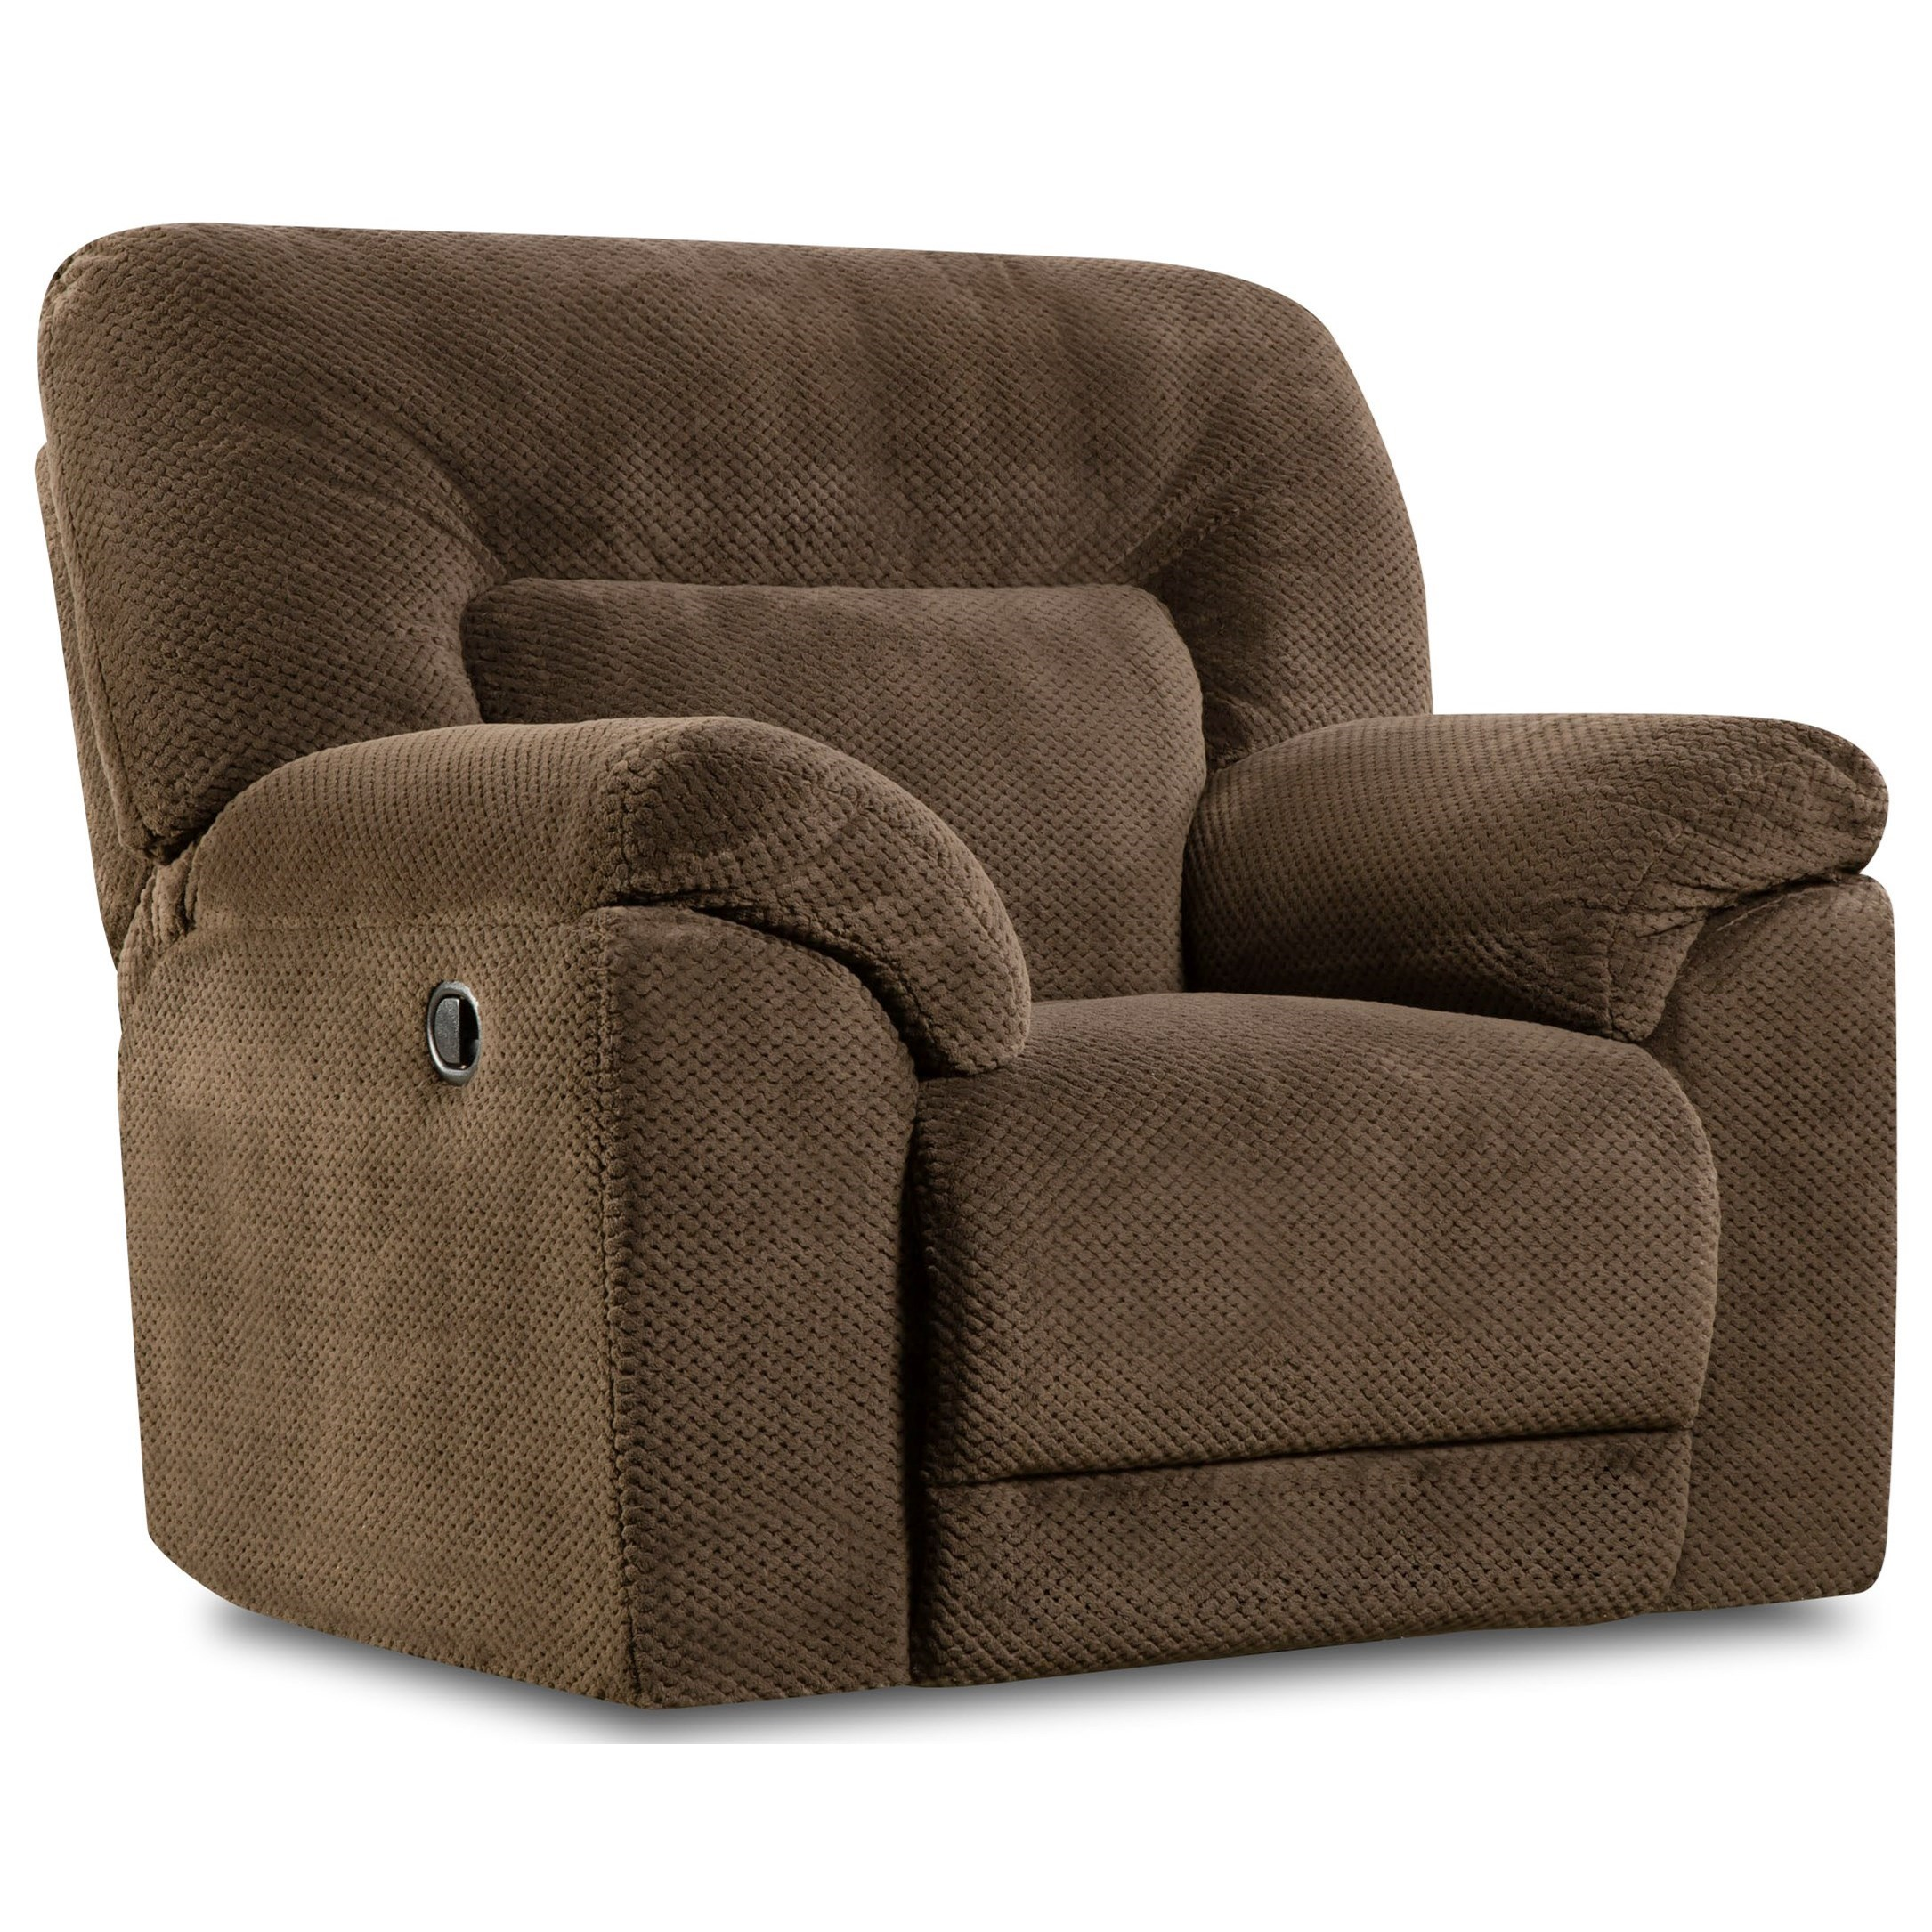 50570 Power Cuddler Recliner by United Furniture Industries at Dream Home Interiors